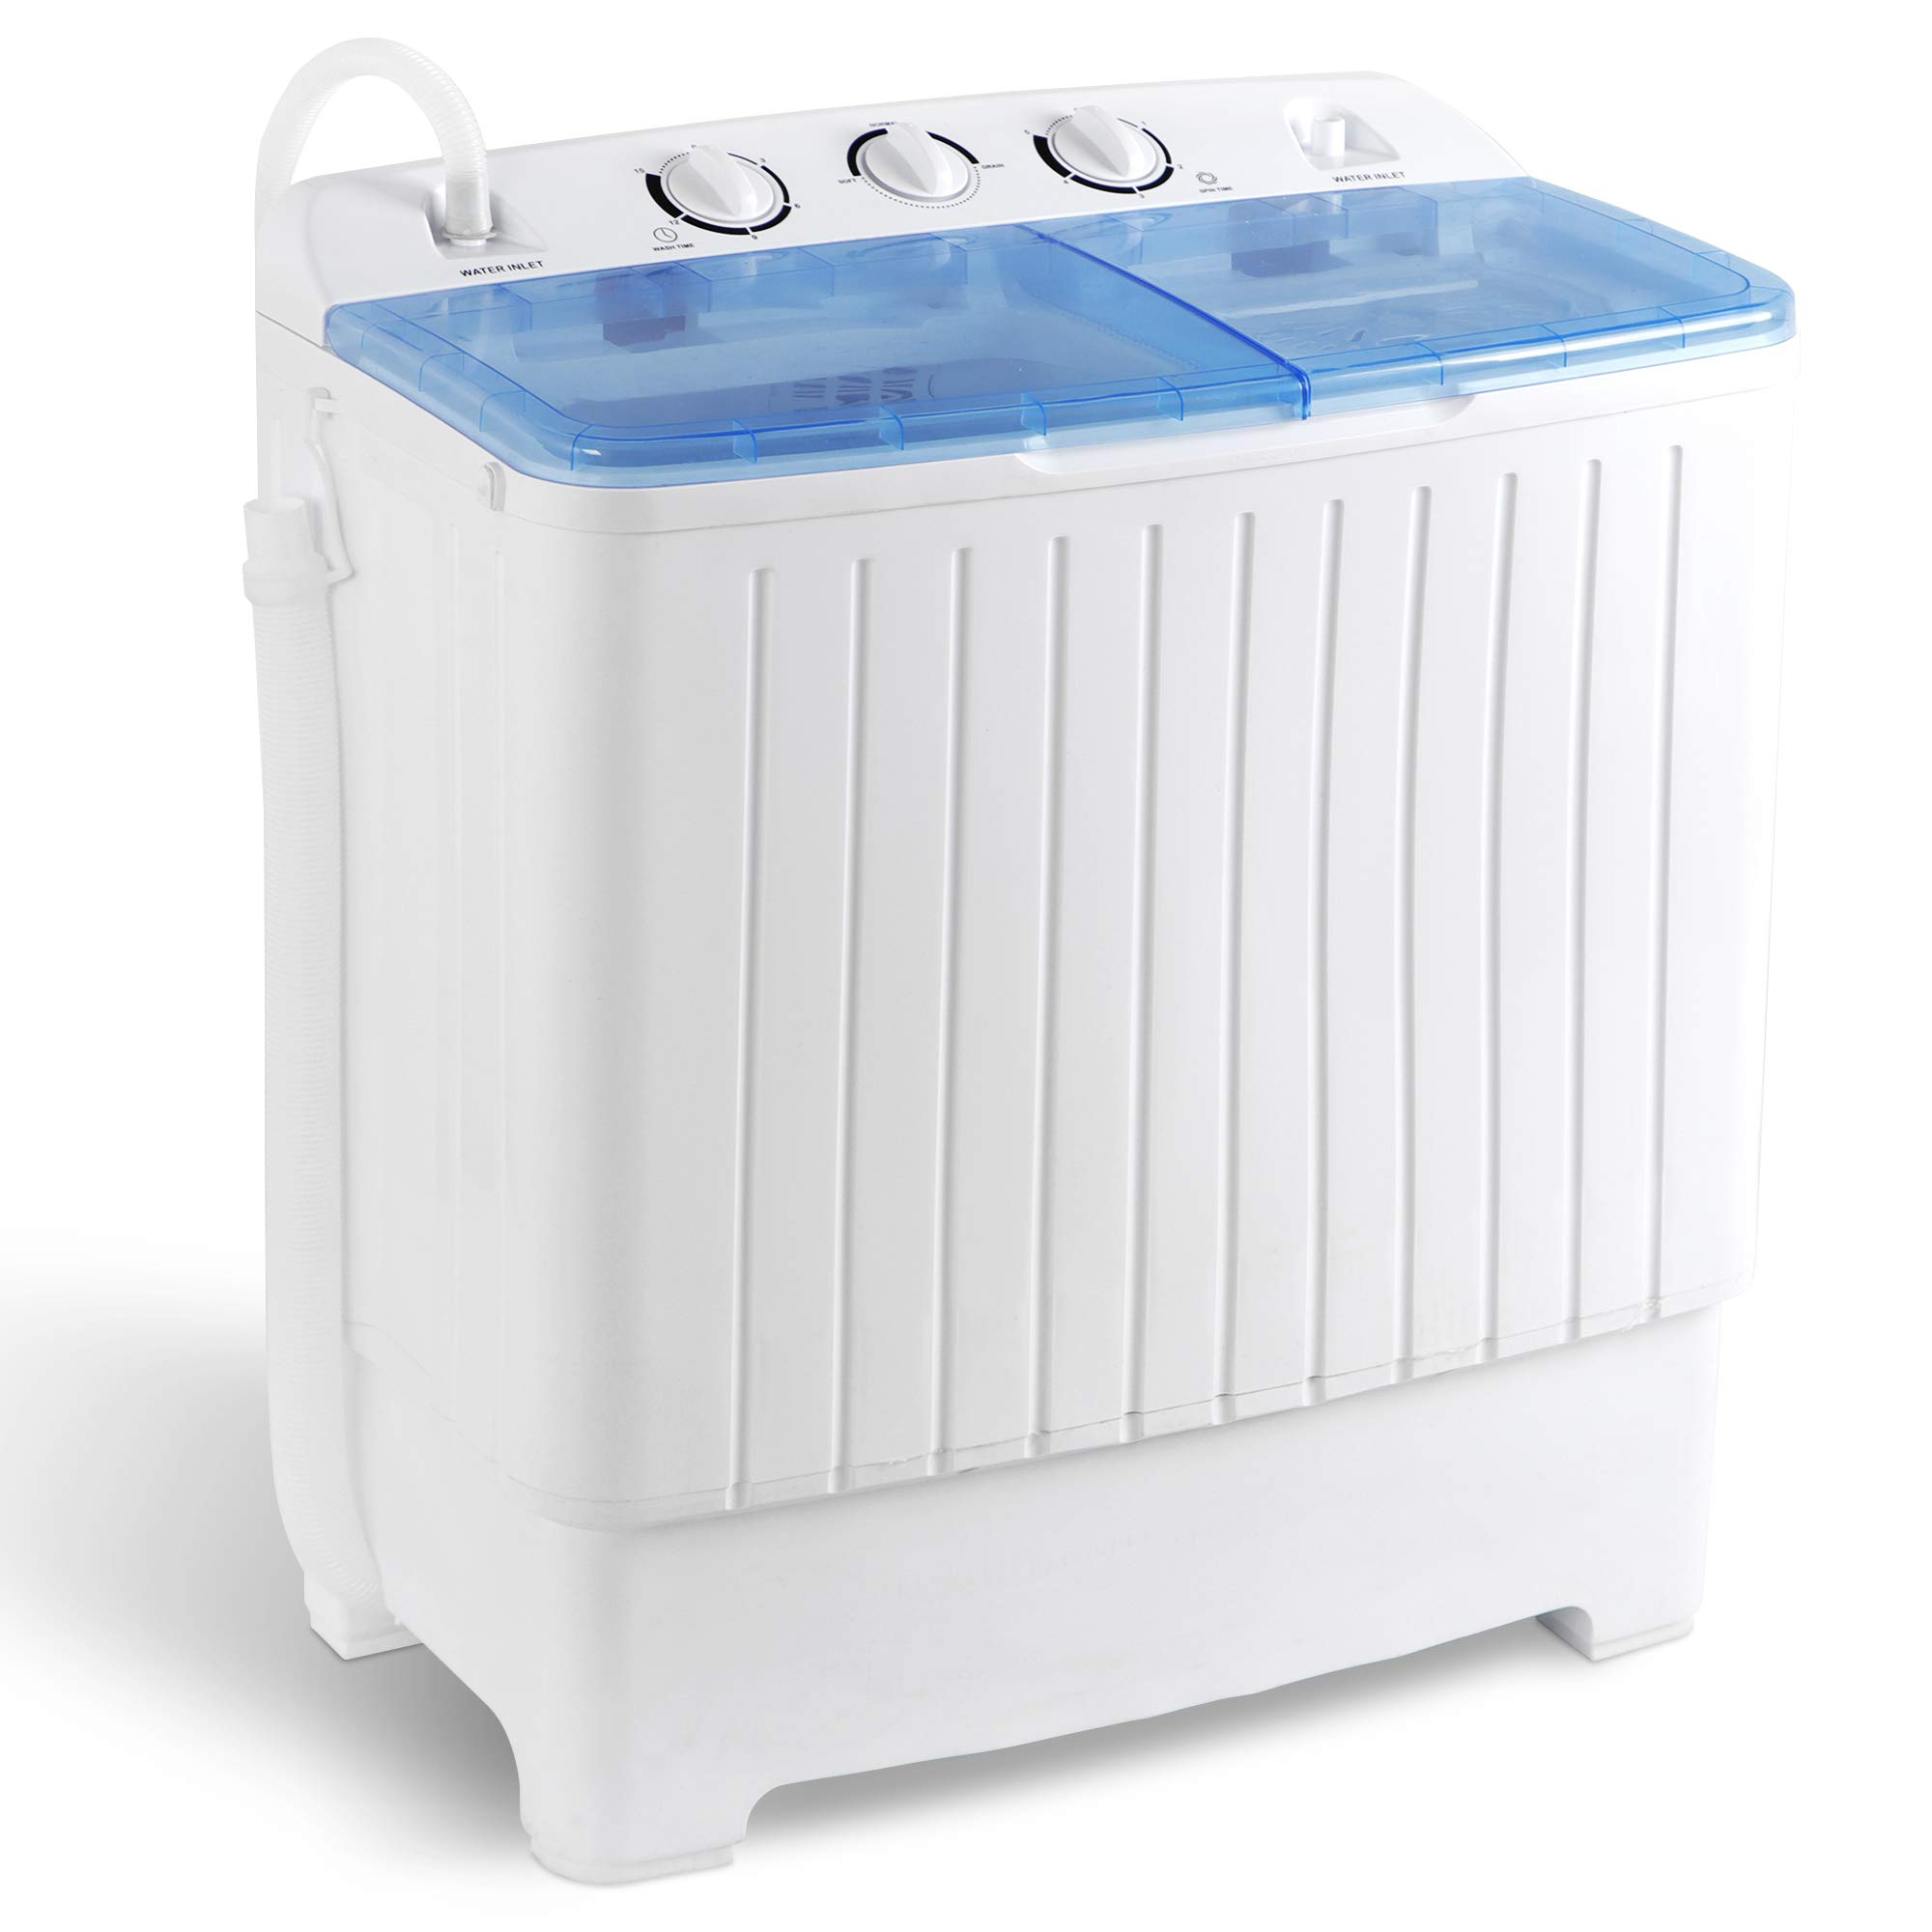 SUPER DEAL 5th Generation Mini Compact Twin Tub Washing Machine 17.6lbs Washer and Spinner 2IN1 Ideal for Dorms, Apartments, RV, Camping by SUPER DEAL